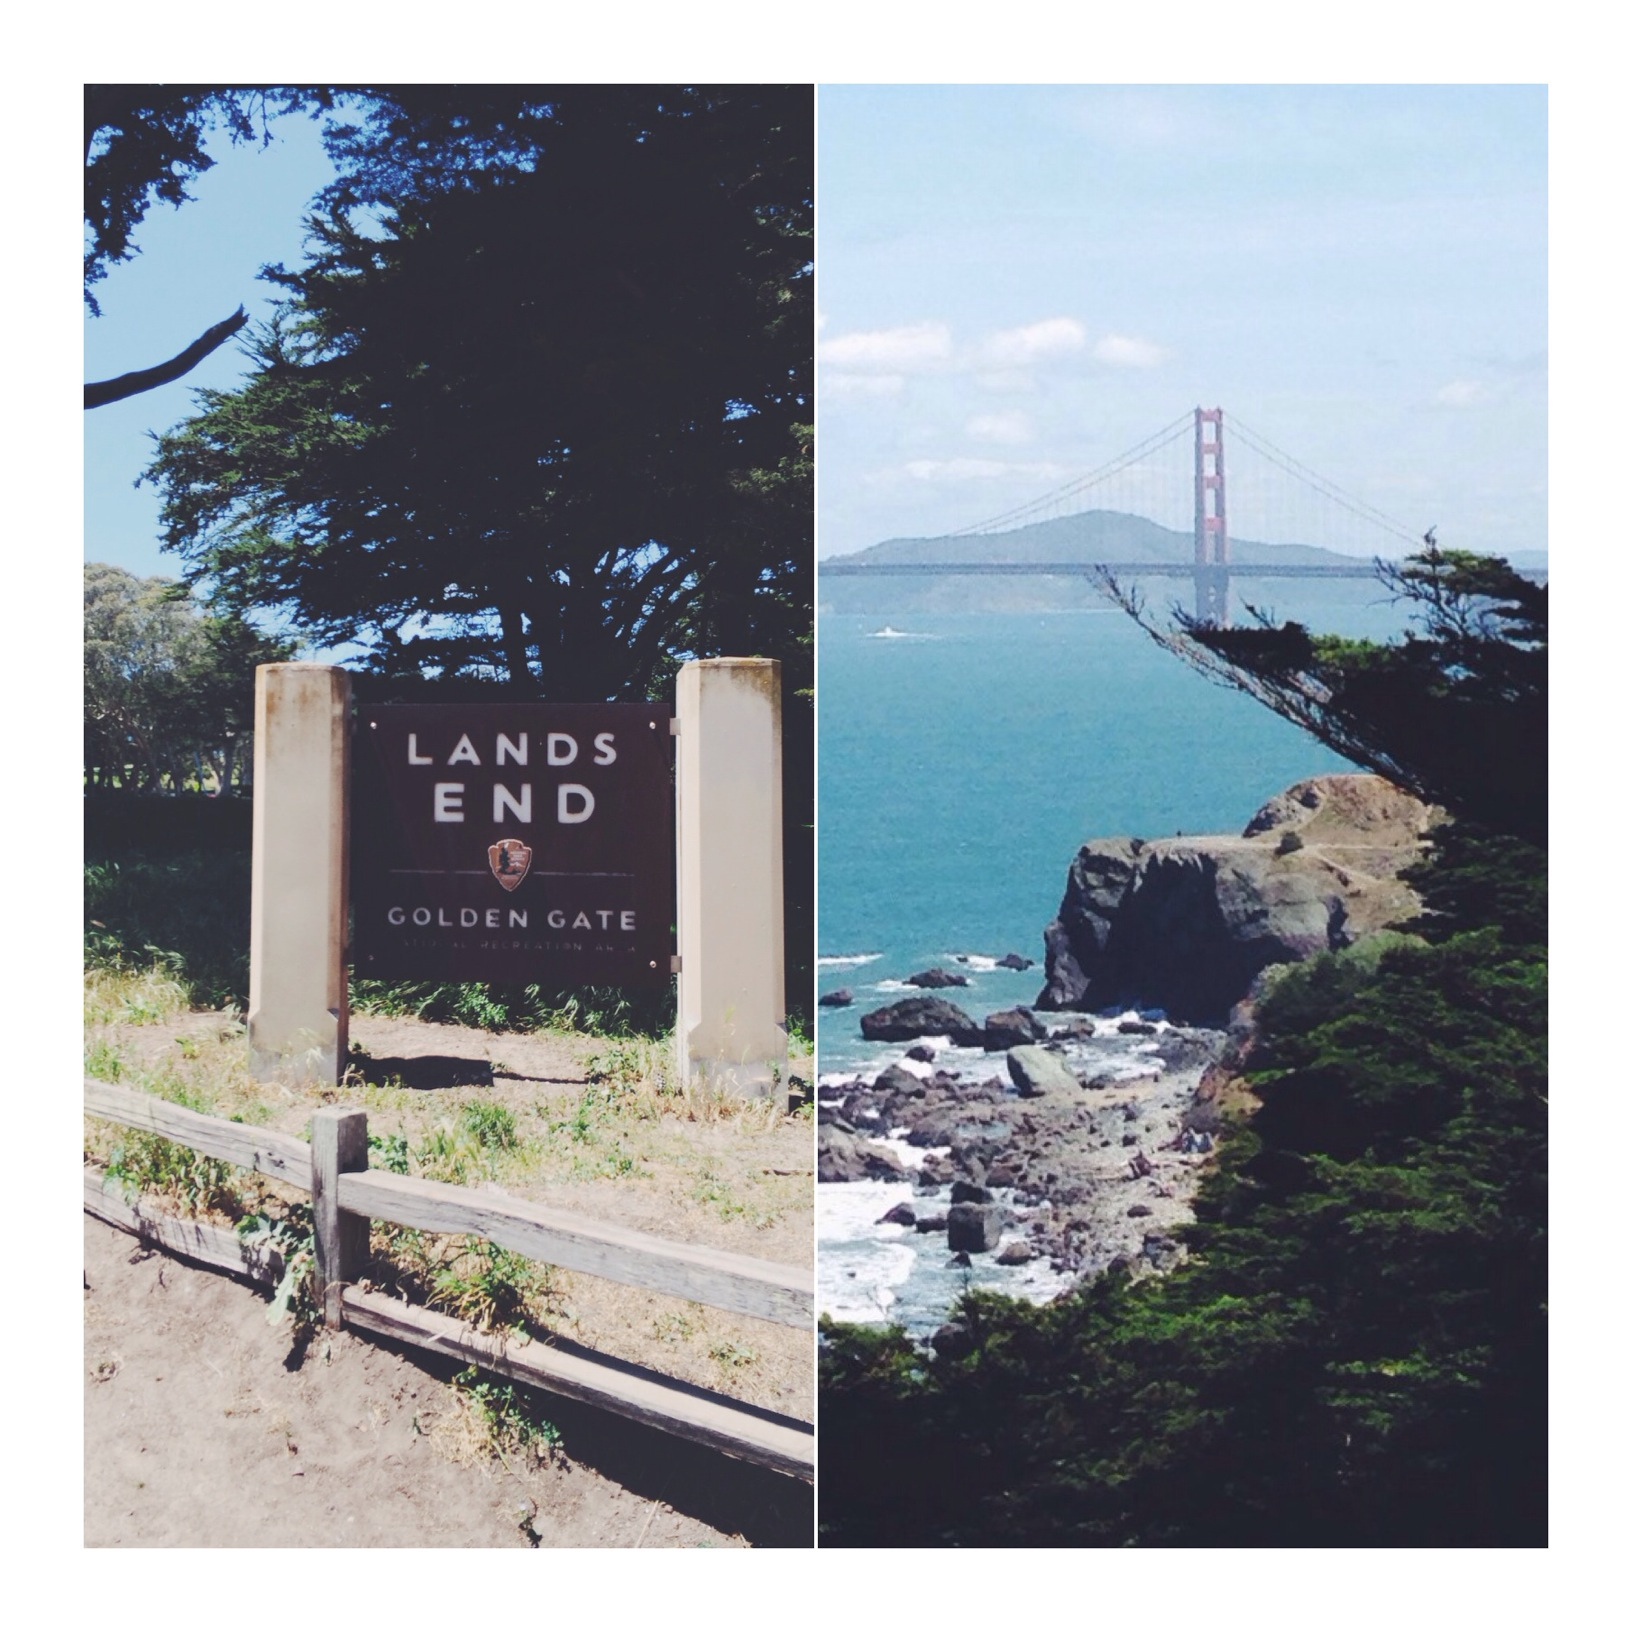 Need to stretch those legs? Check out the  Land's End Trail  for panoramic views of the bay and the Golden Gate Bridge. It's an easy hike with the exception of the never ending flight of woodland stairs, but don't worry that's only at the end.